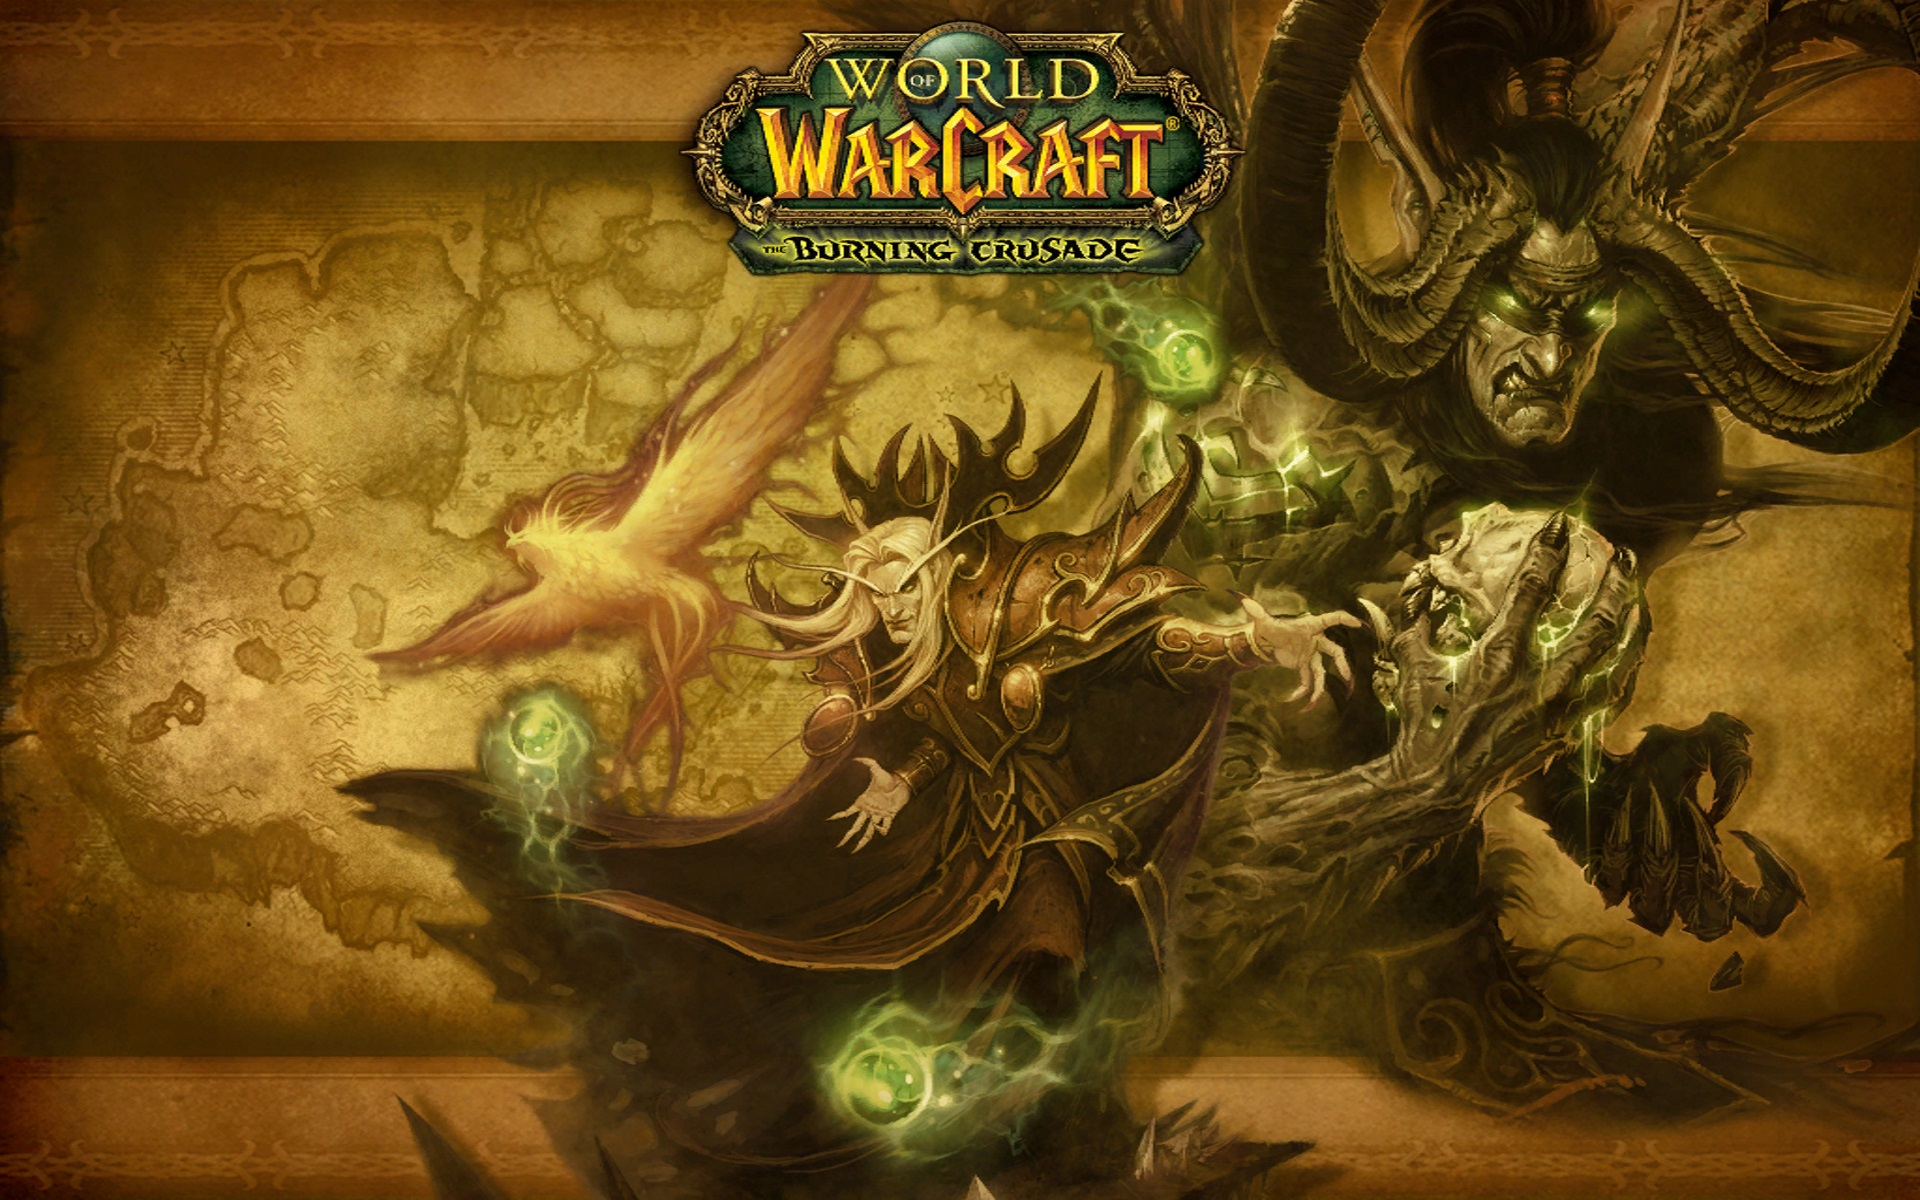 Wrath_of_the_Lich_King_3.3_Outland_loading_screen